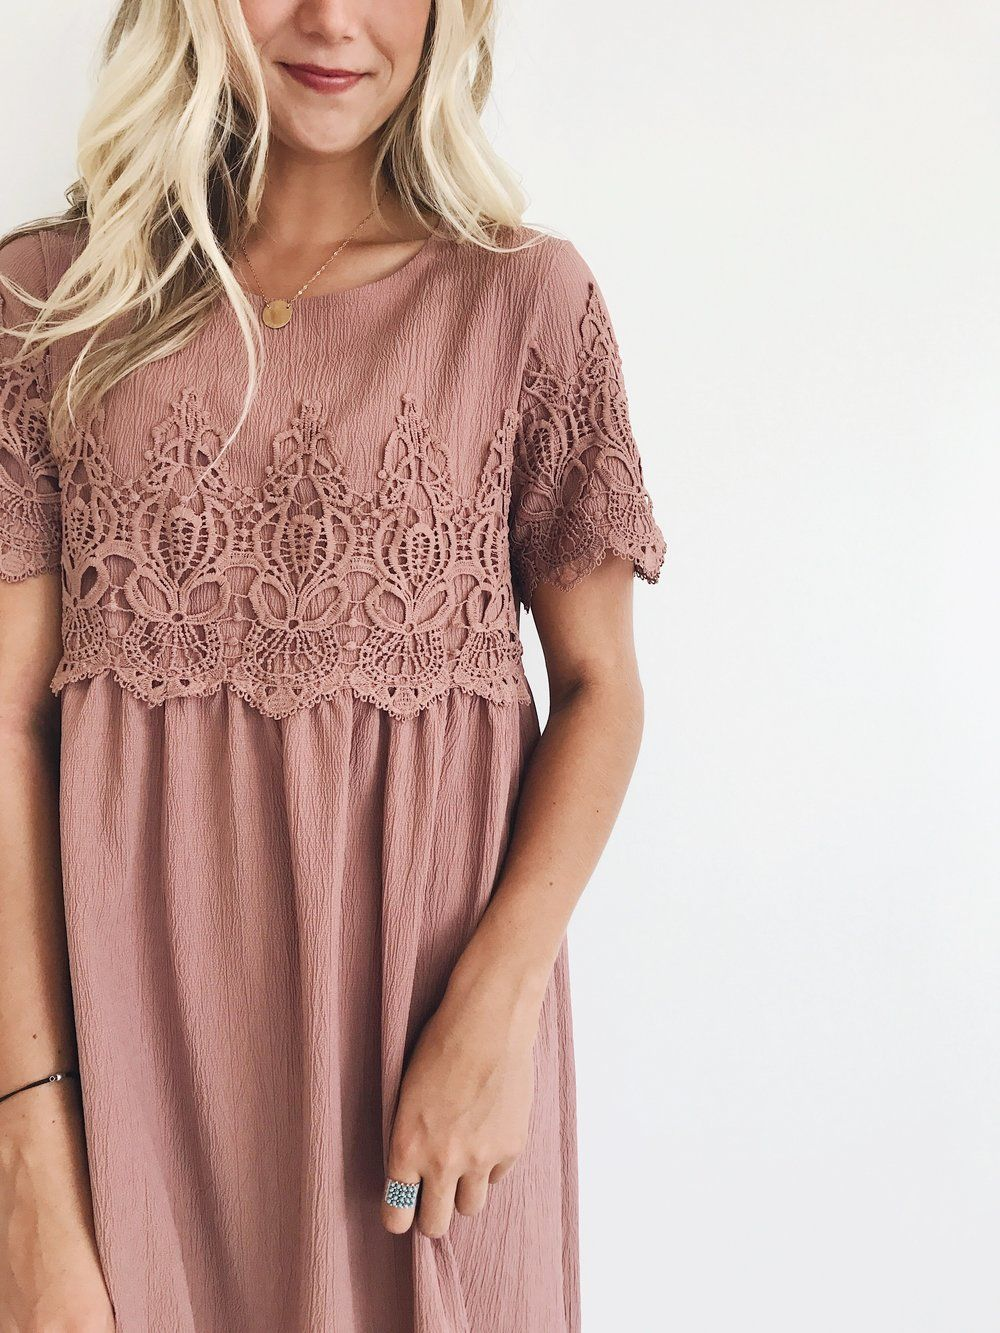 Simple lace dress styles  Pin by faith fleming on uemy style  Pinterest  Rock Clothes and Mauve